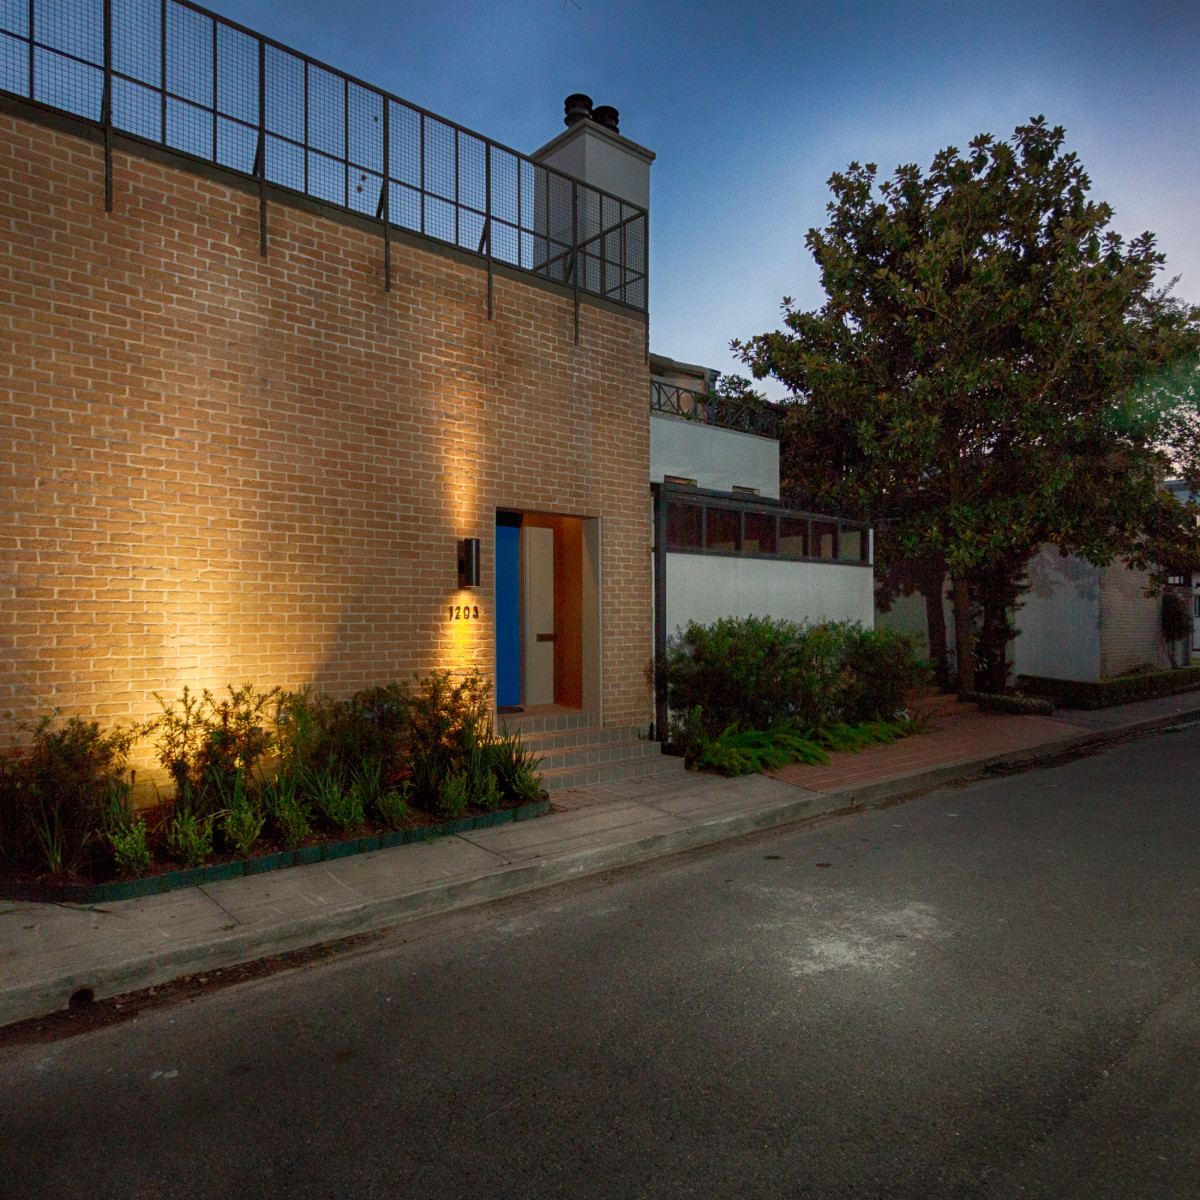 Houston, 1203 Berthea, September 2015, elevation